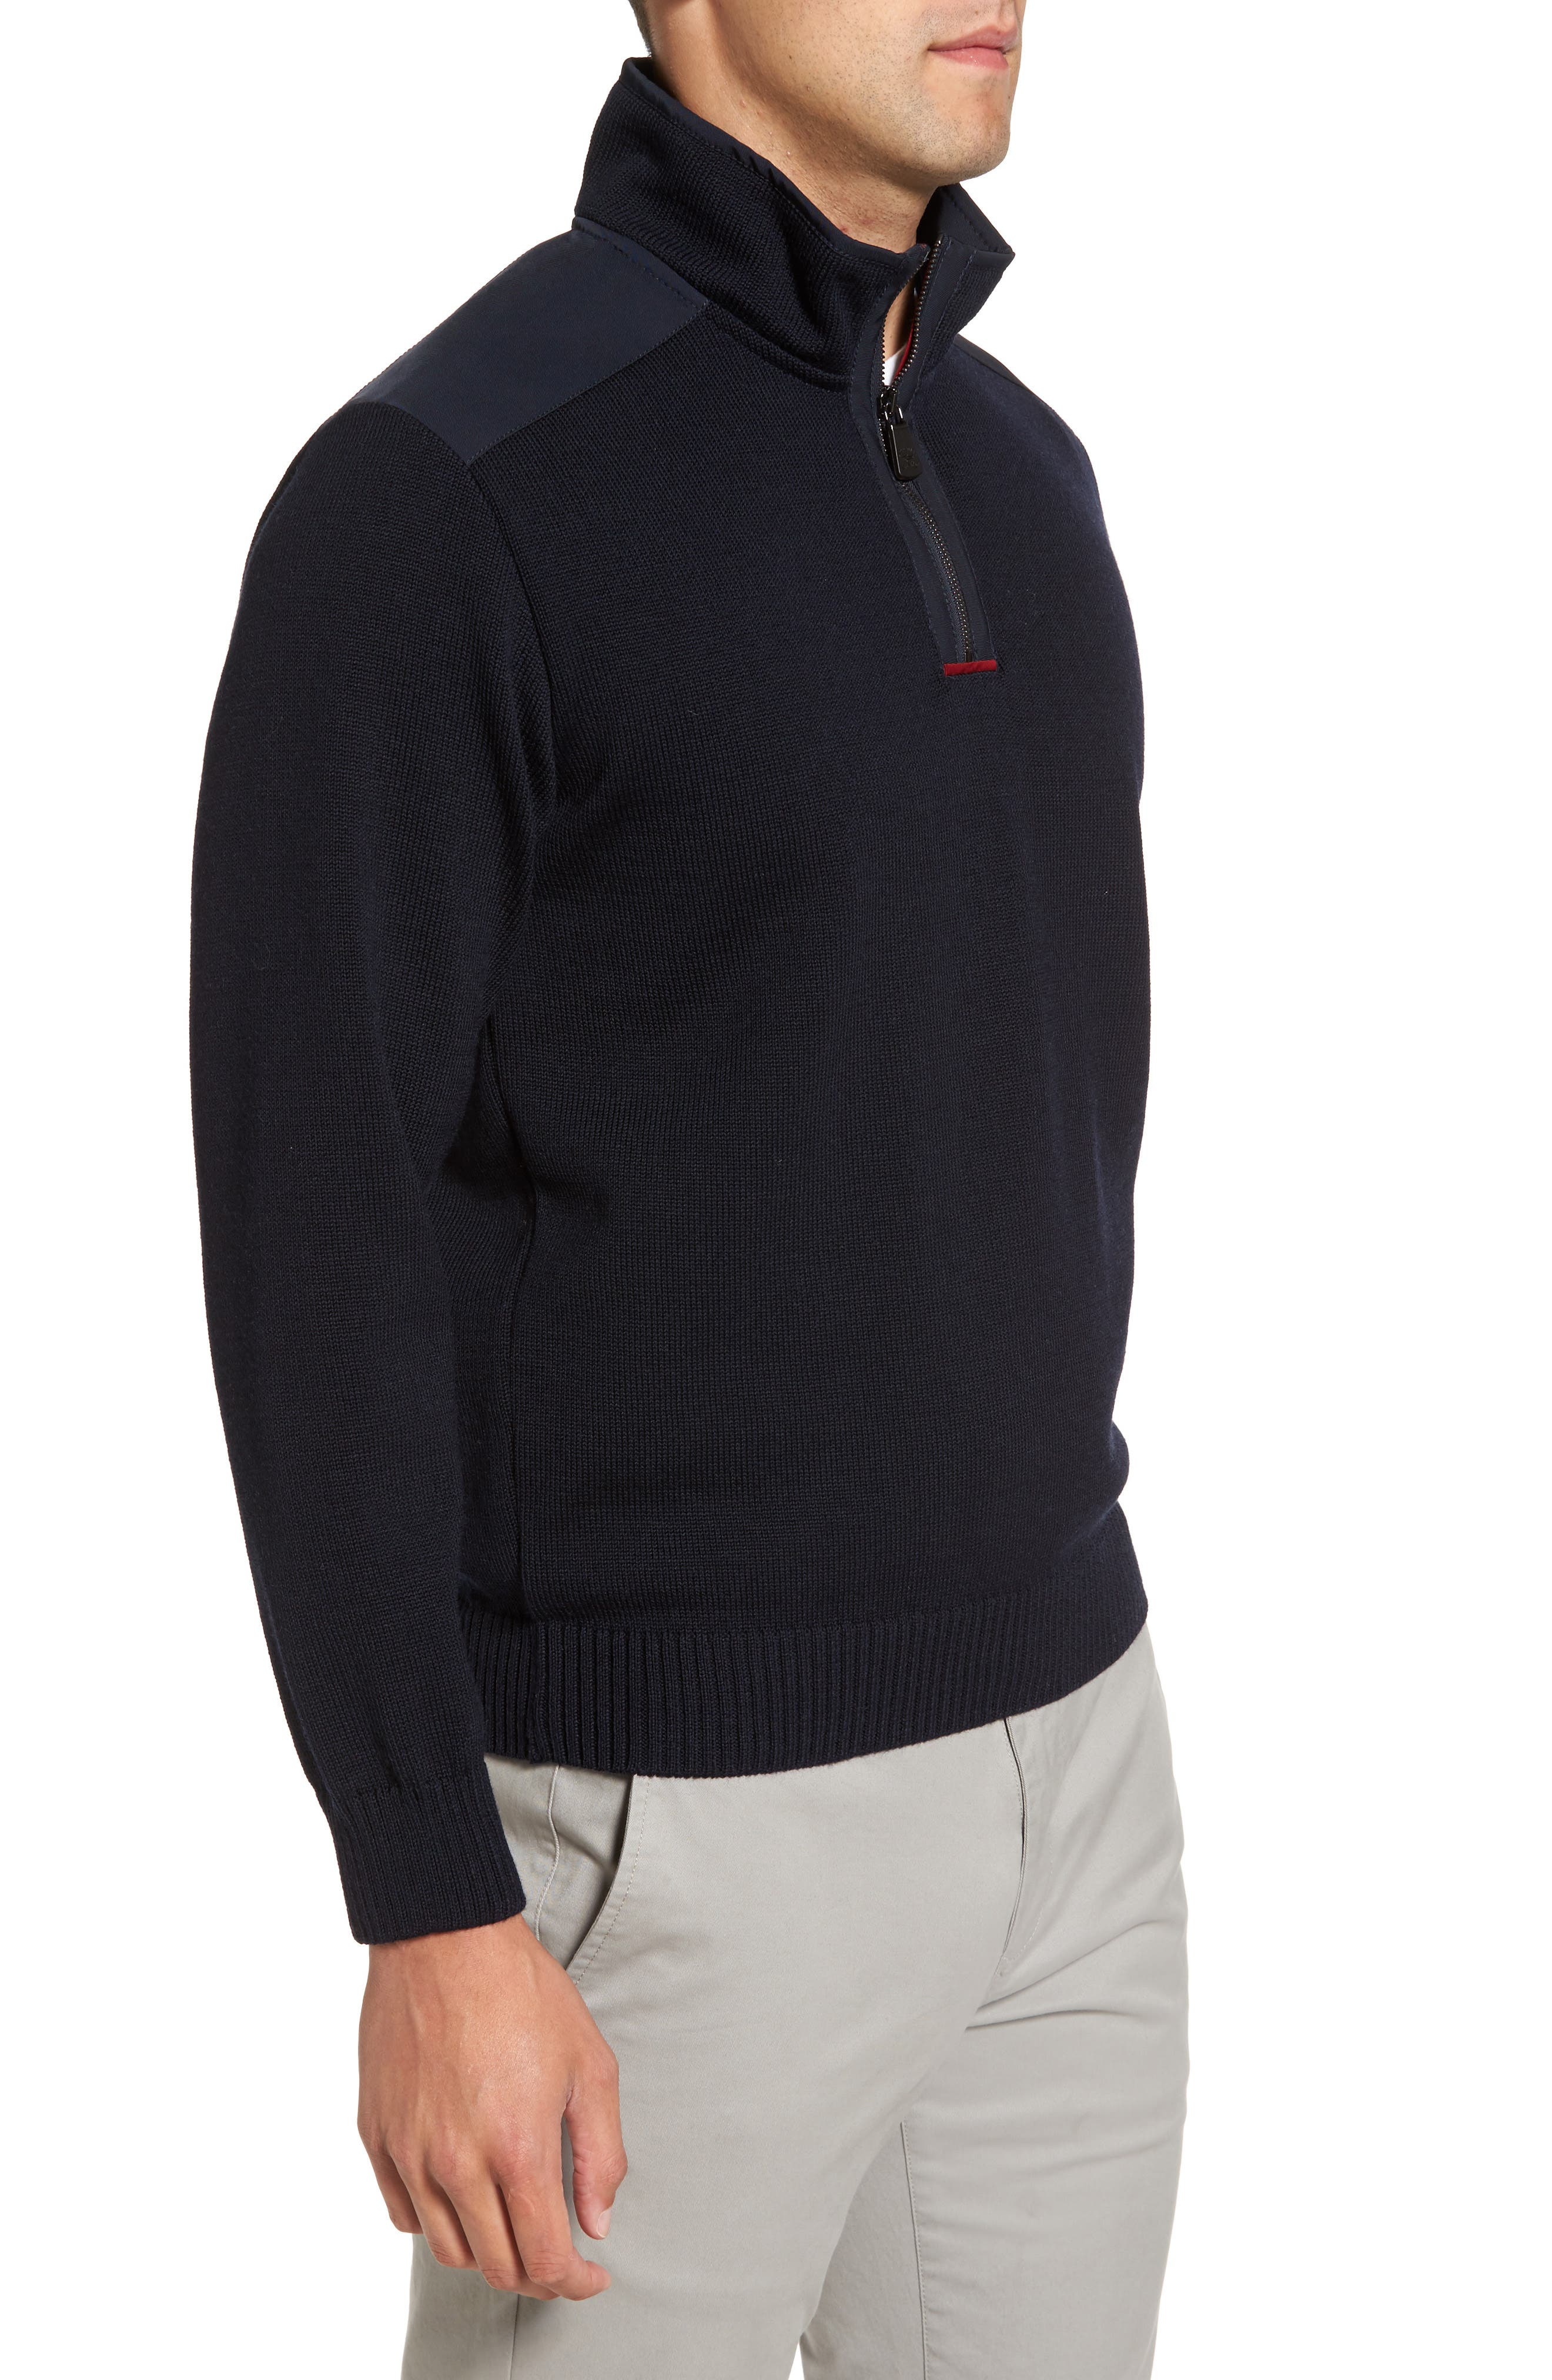 Paul&Shark Bretagne Quarter Zip Wool Sweater,                             Alternate thumbnail 3, color,                             Navy